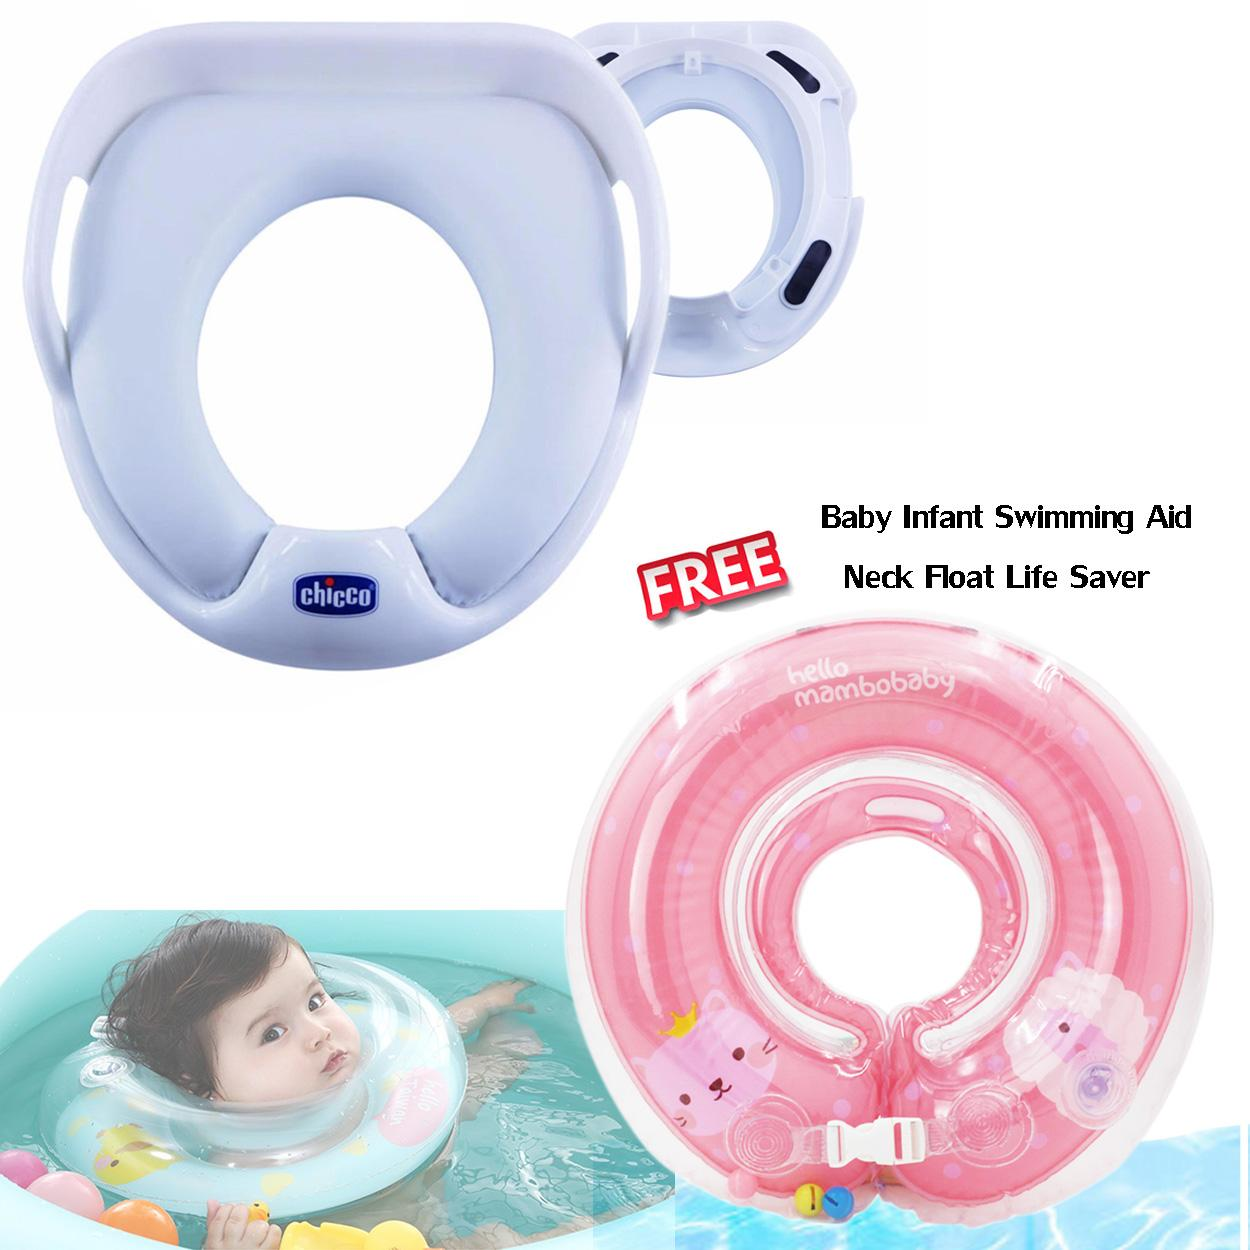 Cartoon Pattern Baby Infant Inflatable Seat Security Swimming Pool Float Swim Ring Under Arm Bath Ring with Small Bell BluePHP593. PHP 599